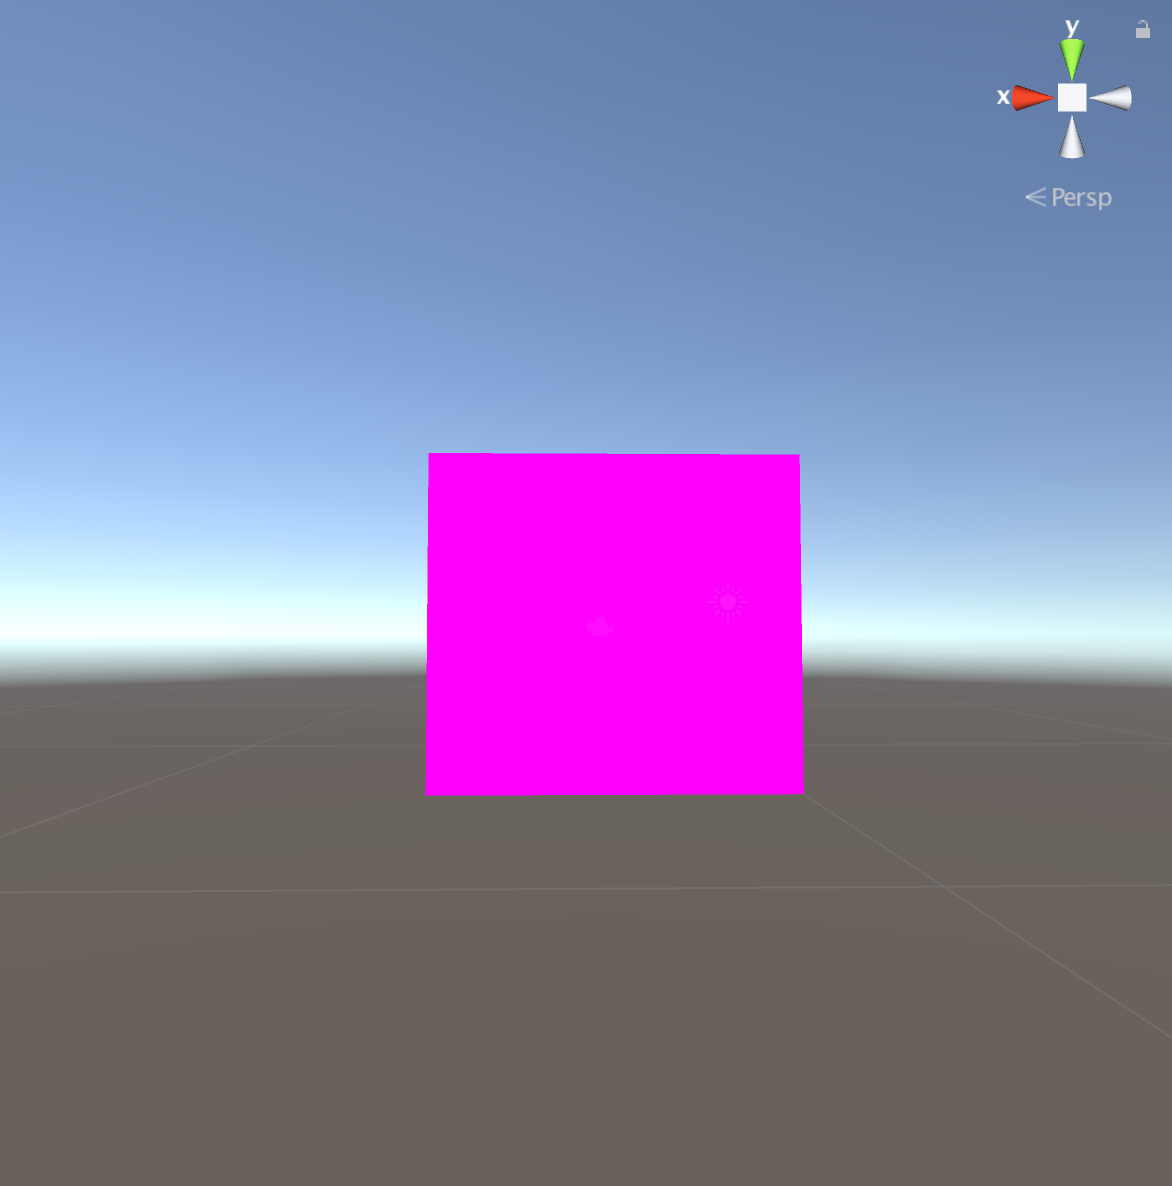 shader error visual symptoms